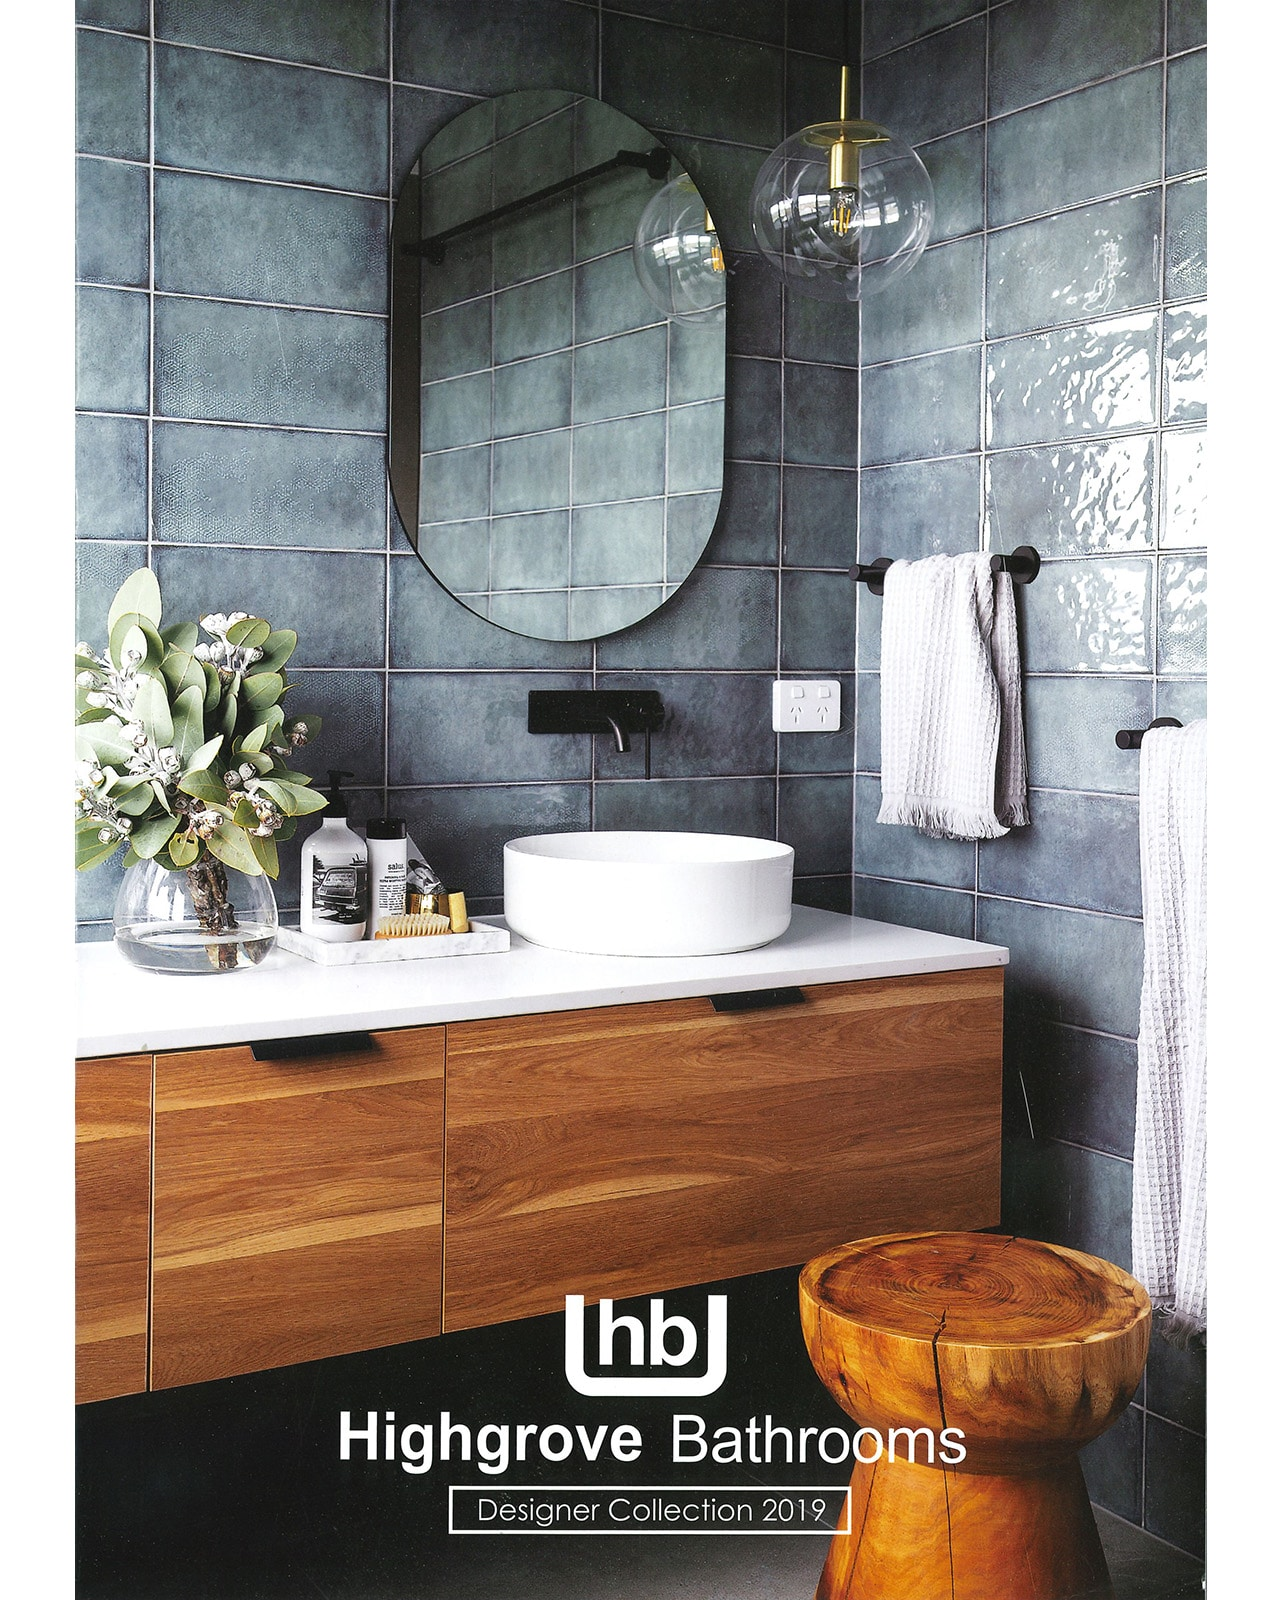 Studio Black Interiors featured in Highgrove Bathrooms Magazine.